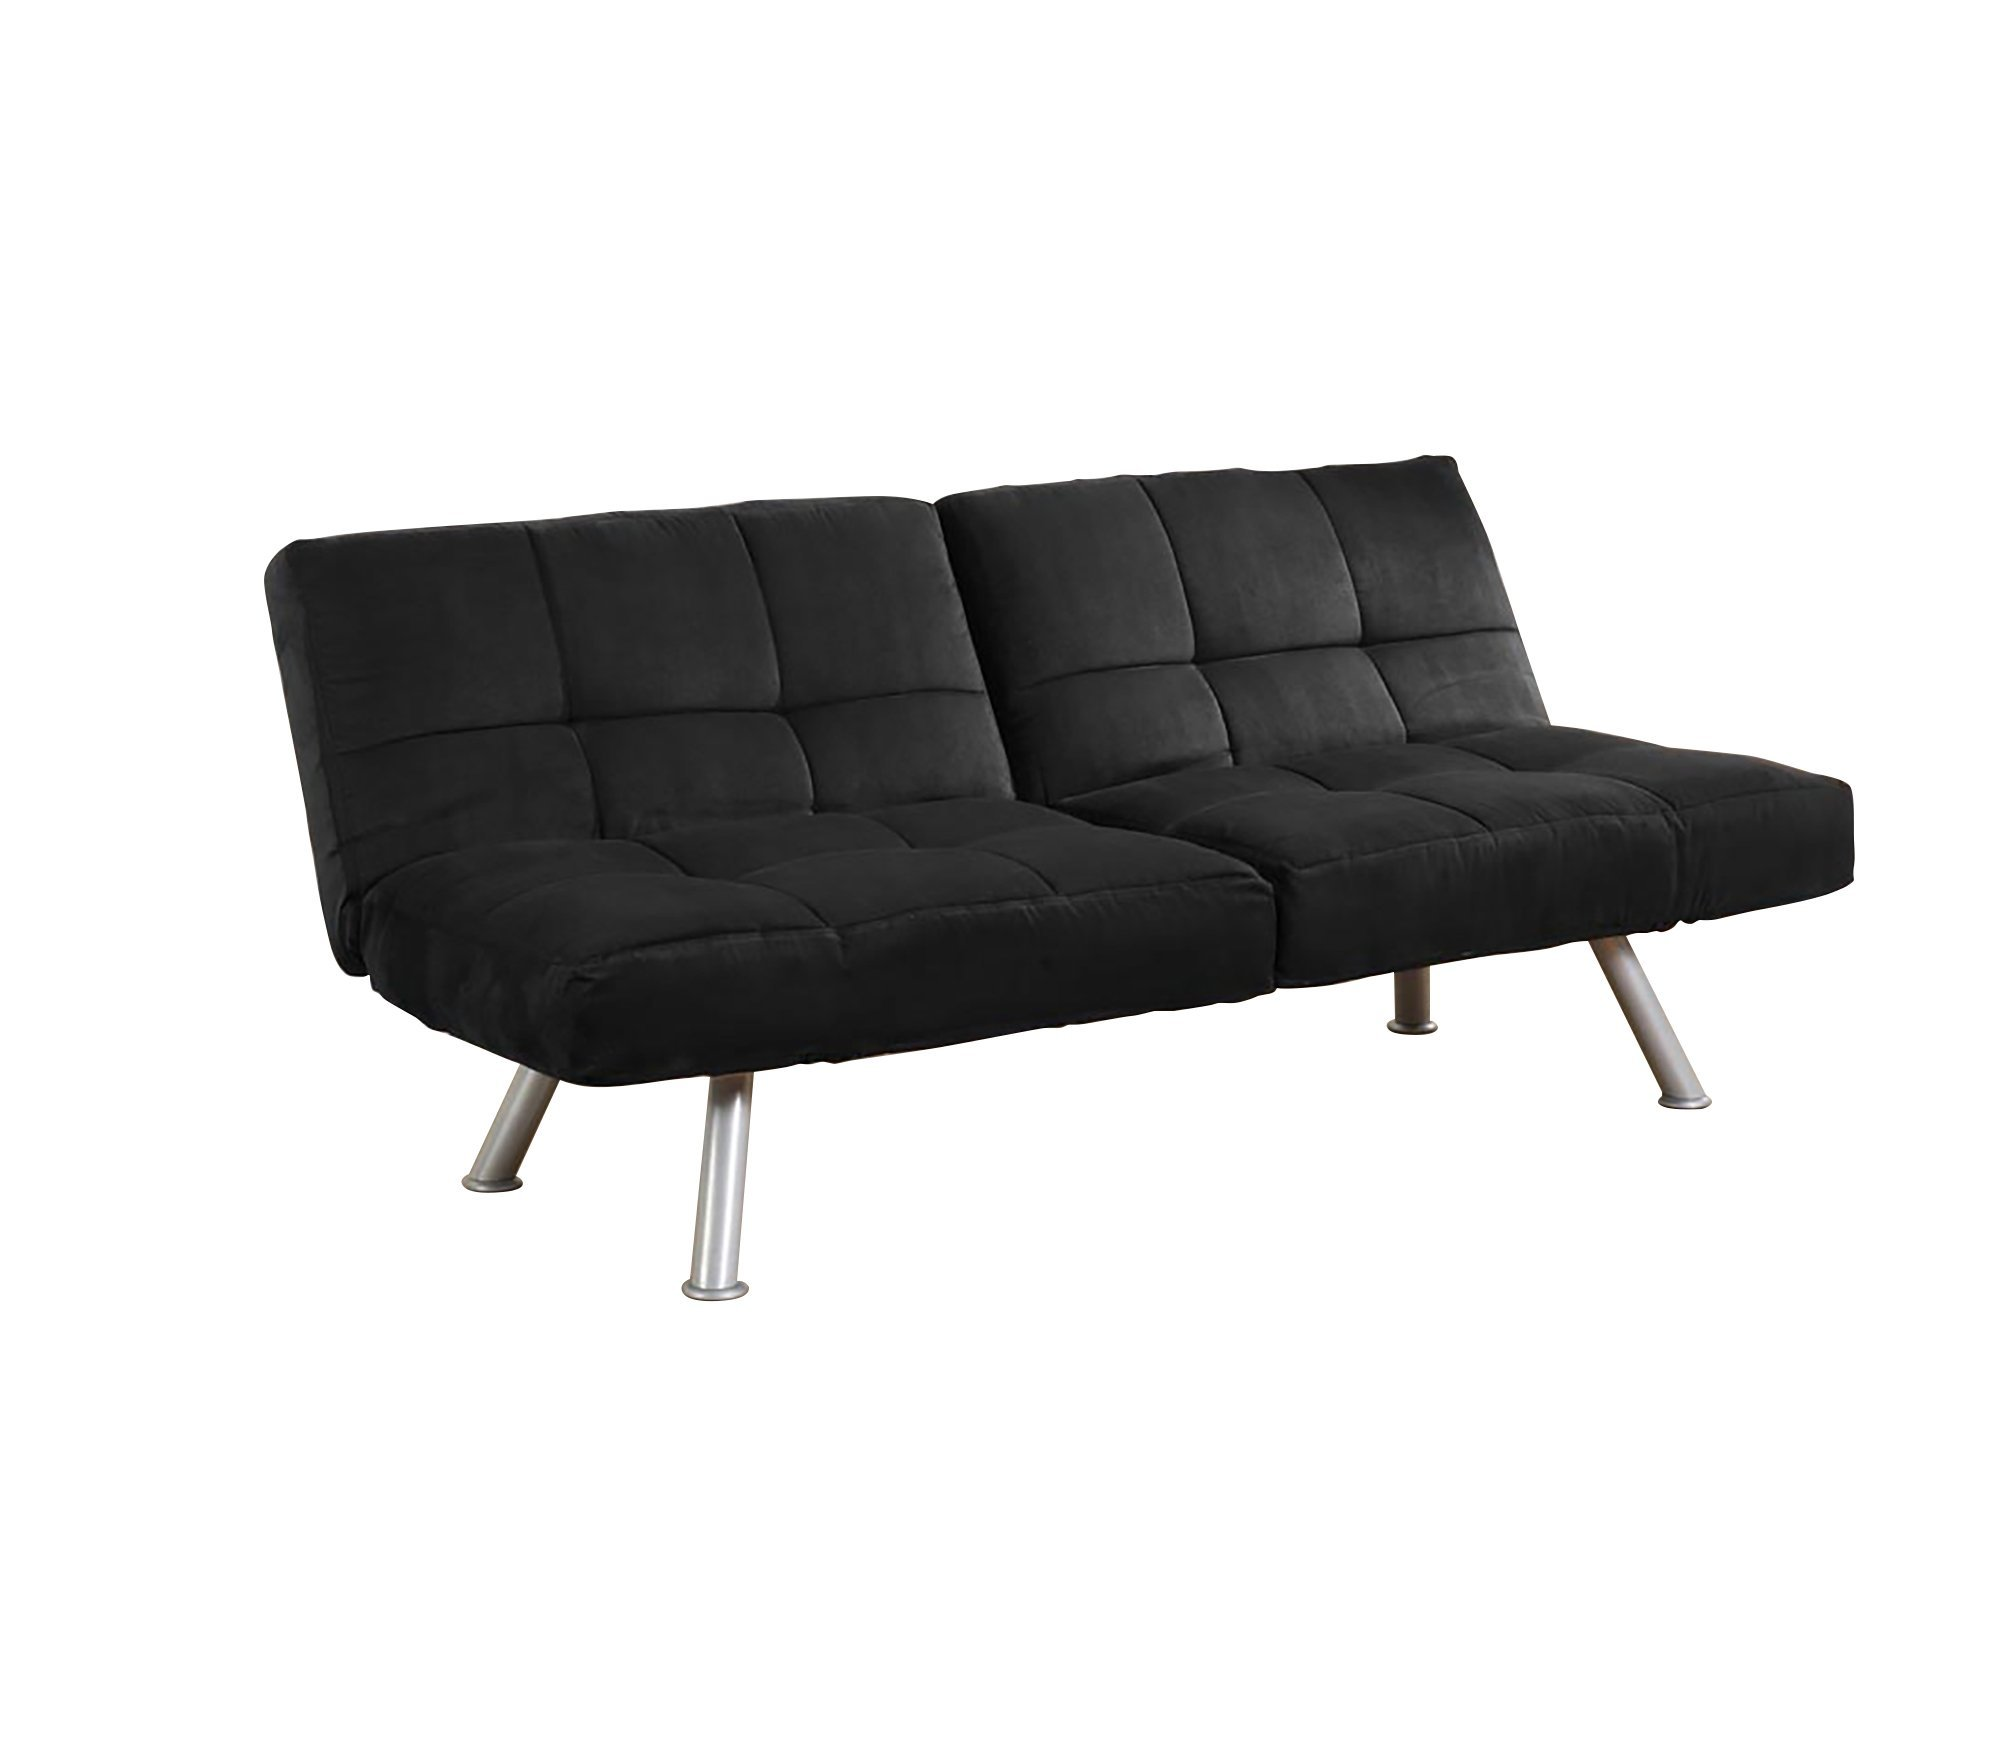 poundex storage leather bed couch collection folding arms the faux black silia espresso in with sofa futon